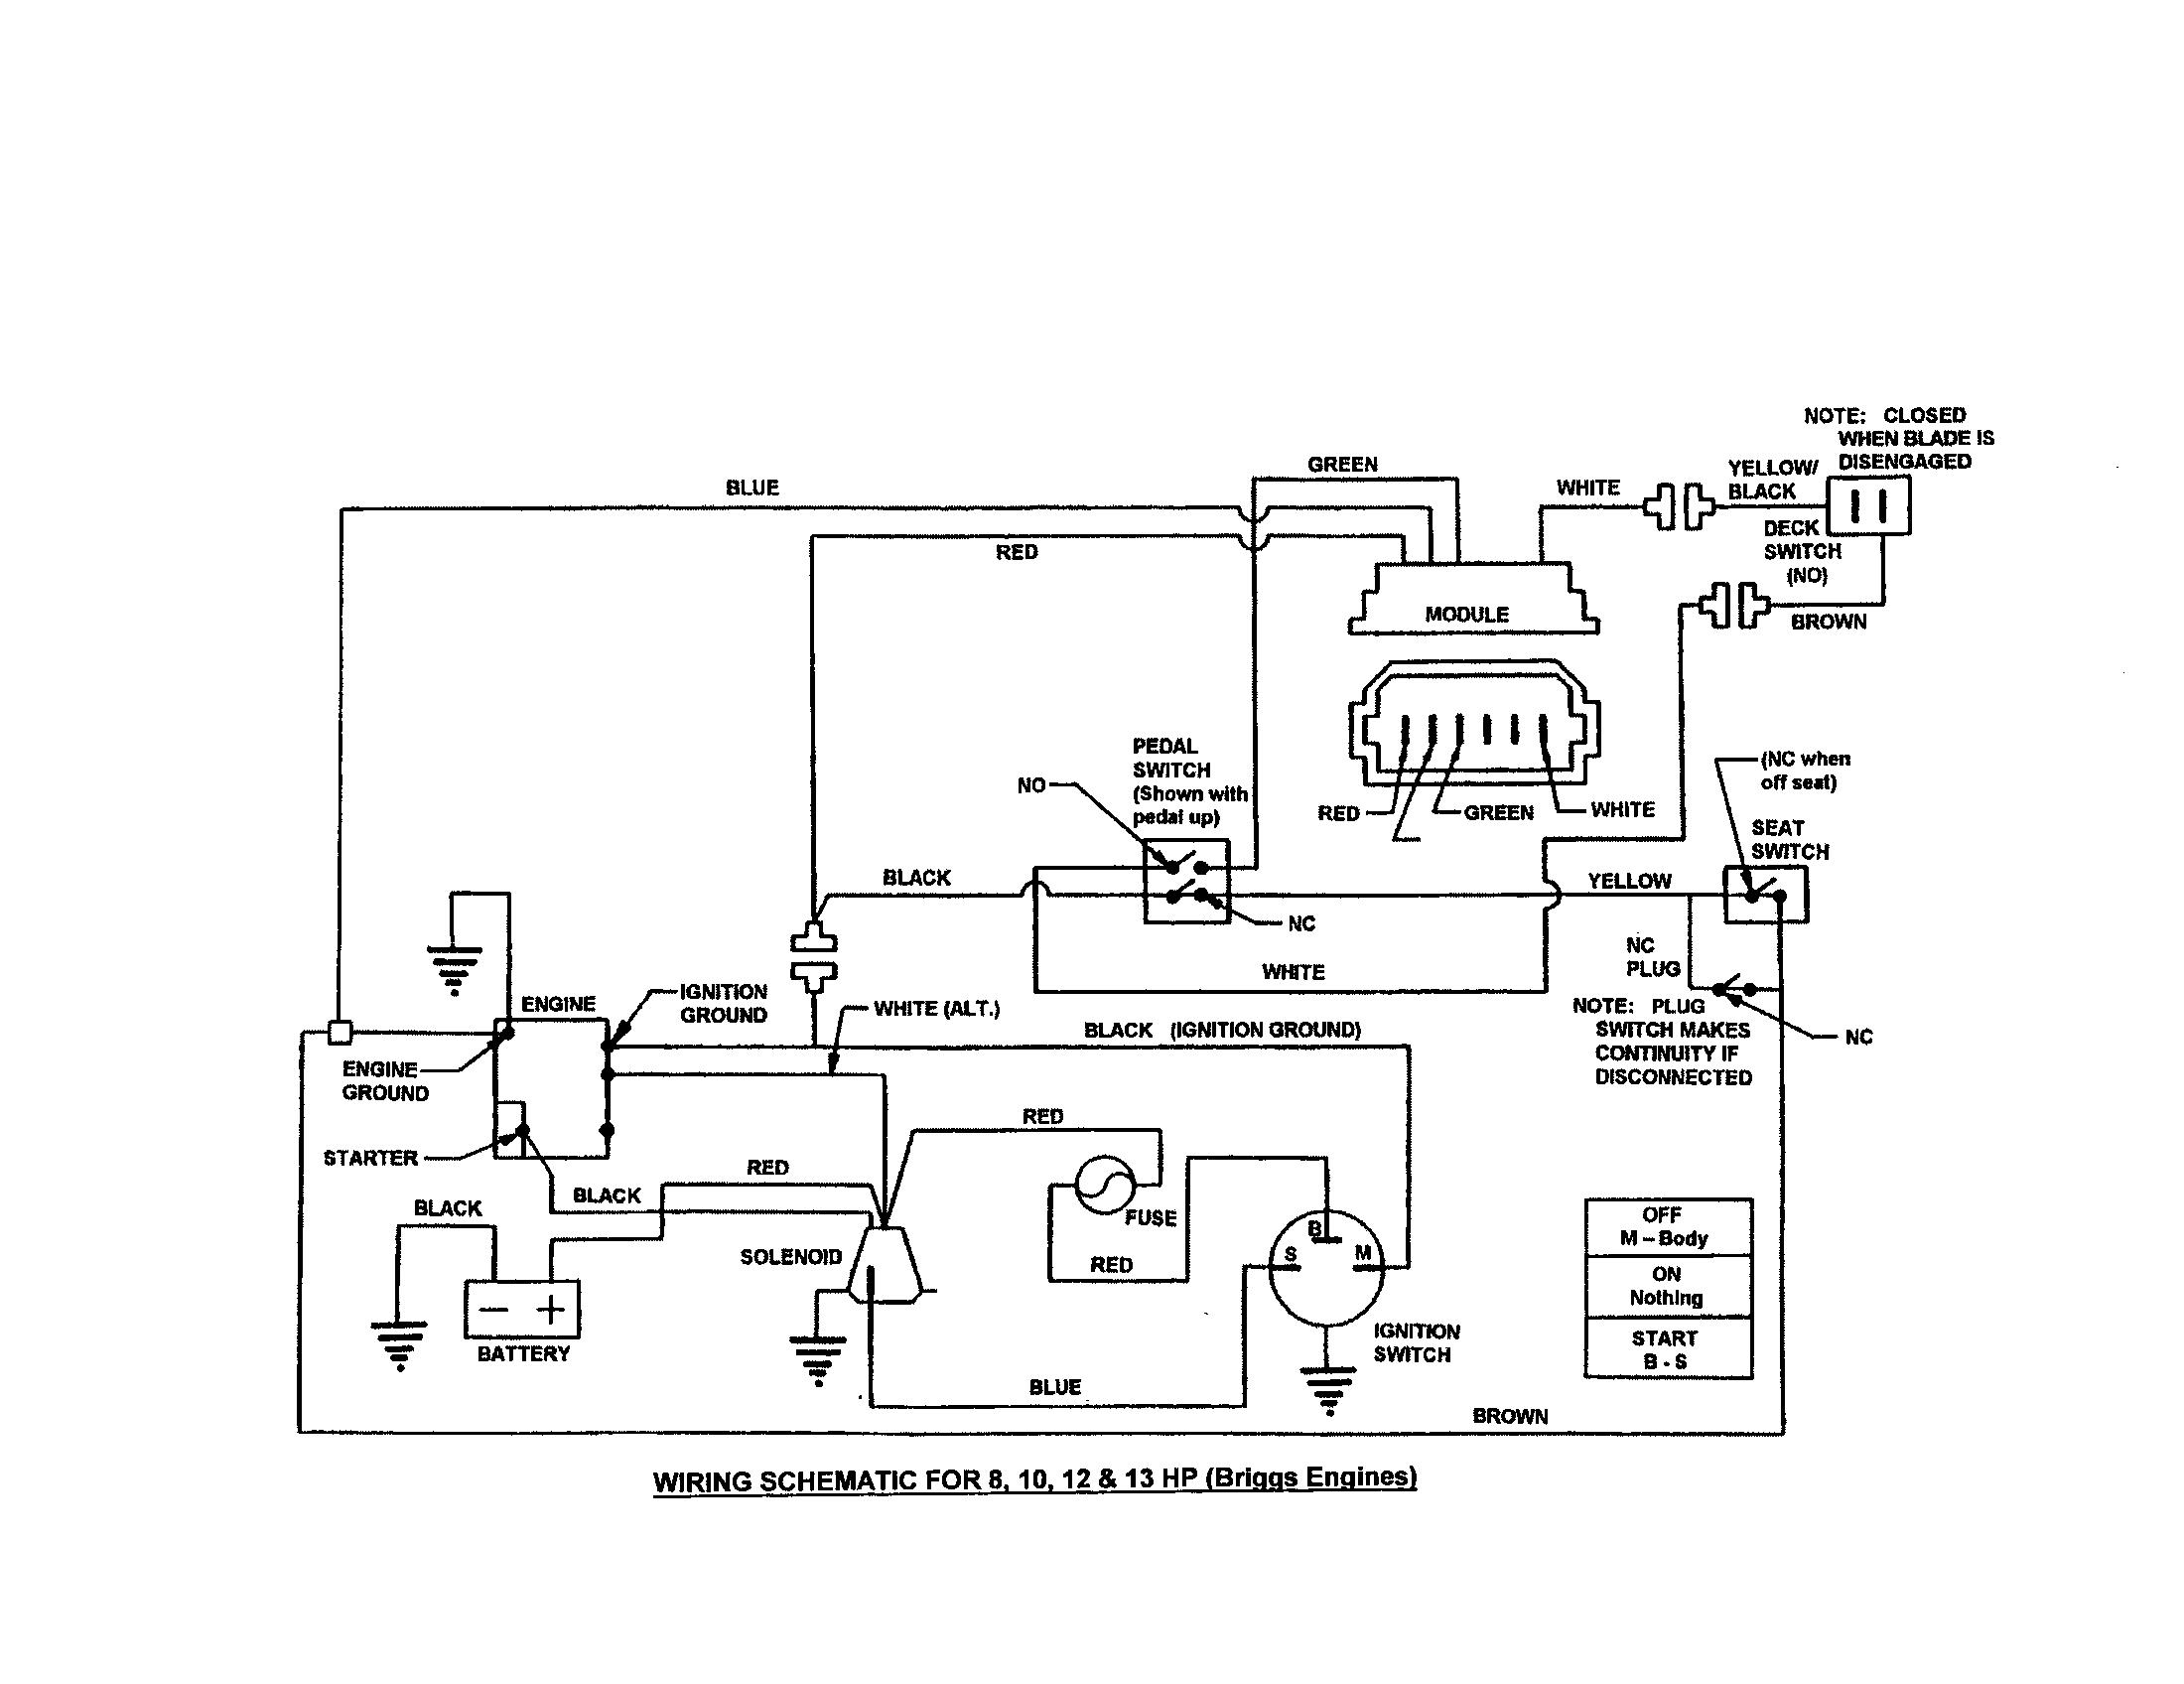 WIRING SCHEMATIC-8,10,12,13 HP Diagram & Parts List for